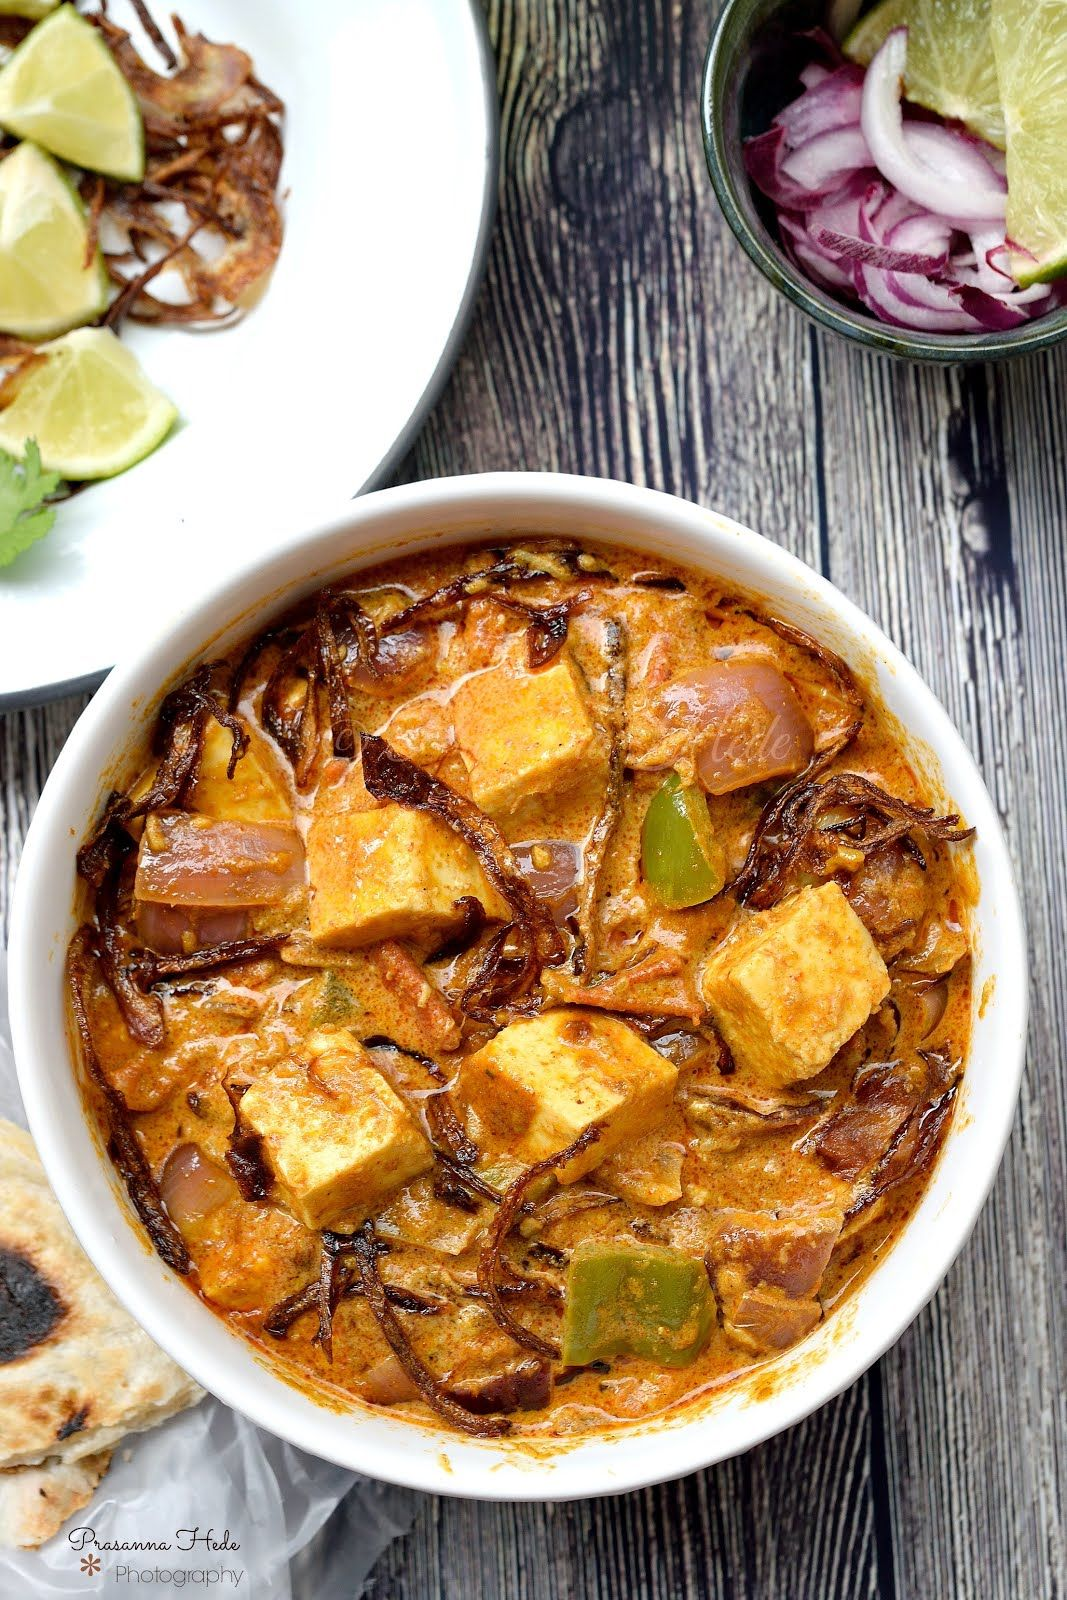 Paneer do pyaza paneer dopiaza paneer dishes dishes and indian food recipes forumfinder Gallery